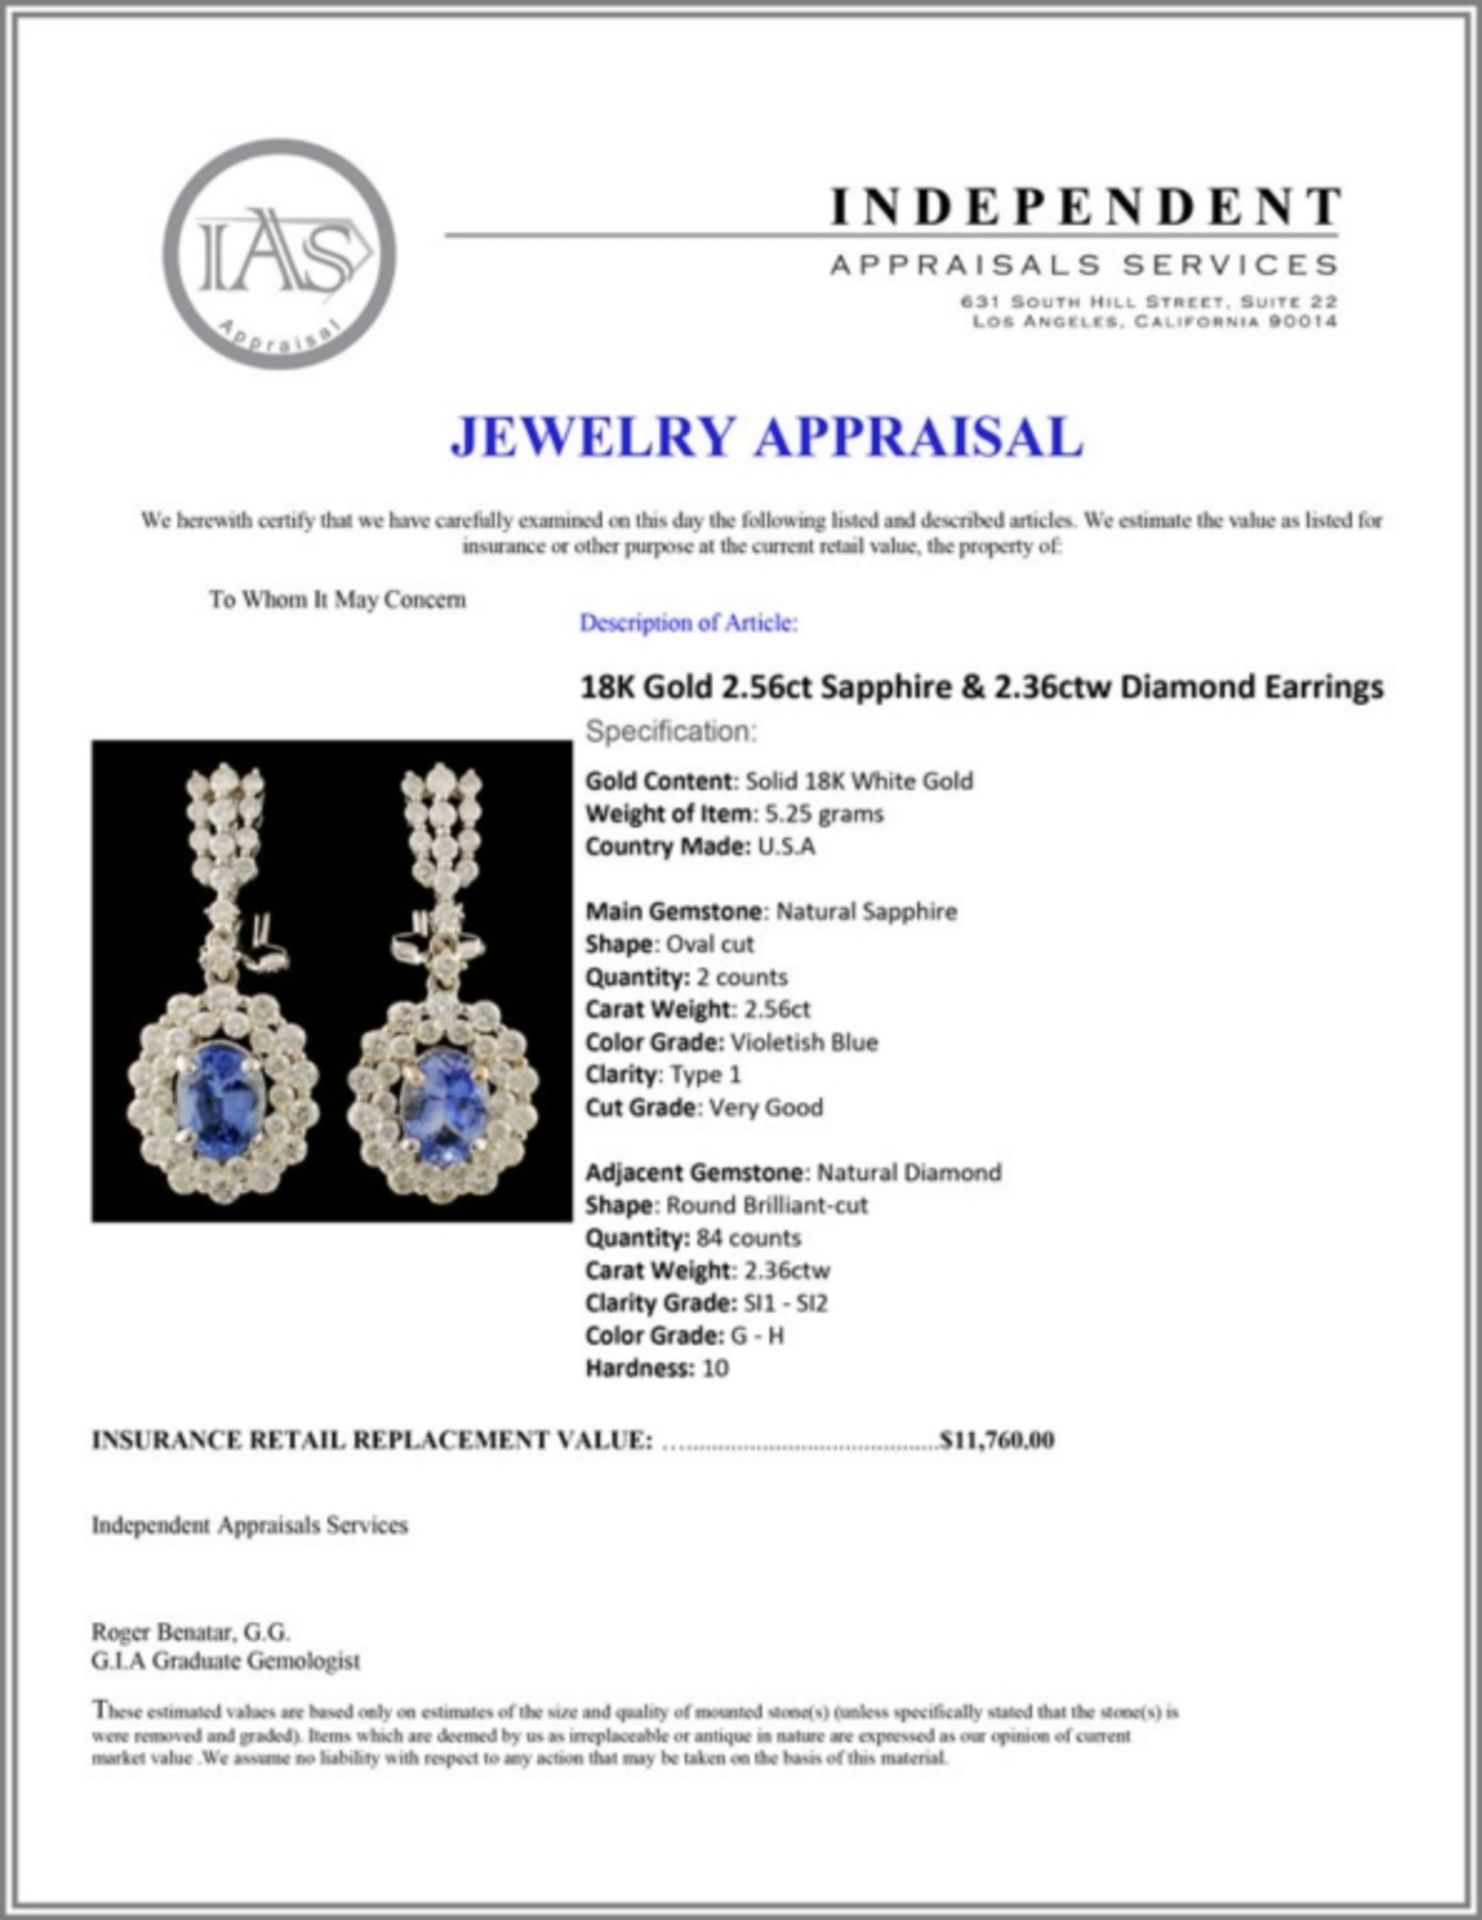 18K Gold 2.56ct Sapphire & 2.36ctw Diamond Earring - Image 3 of 3